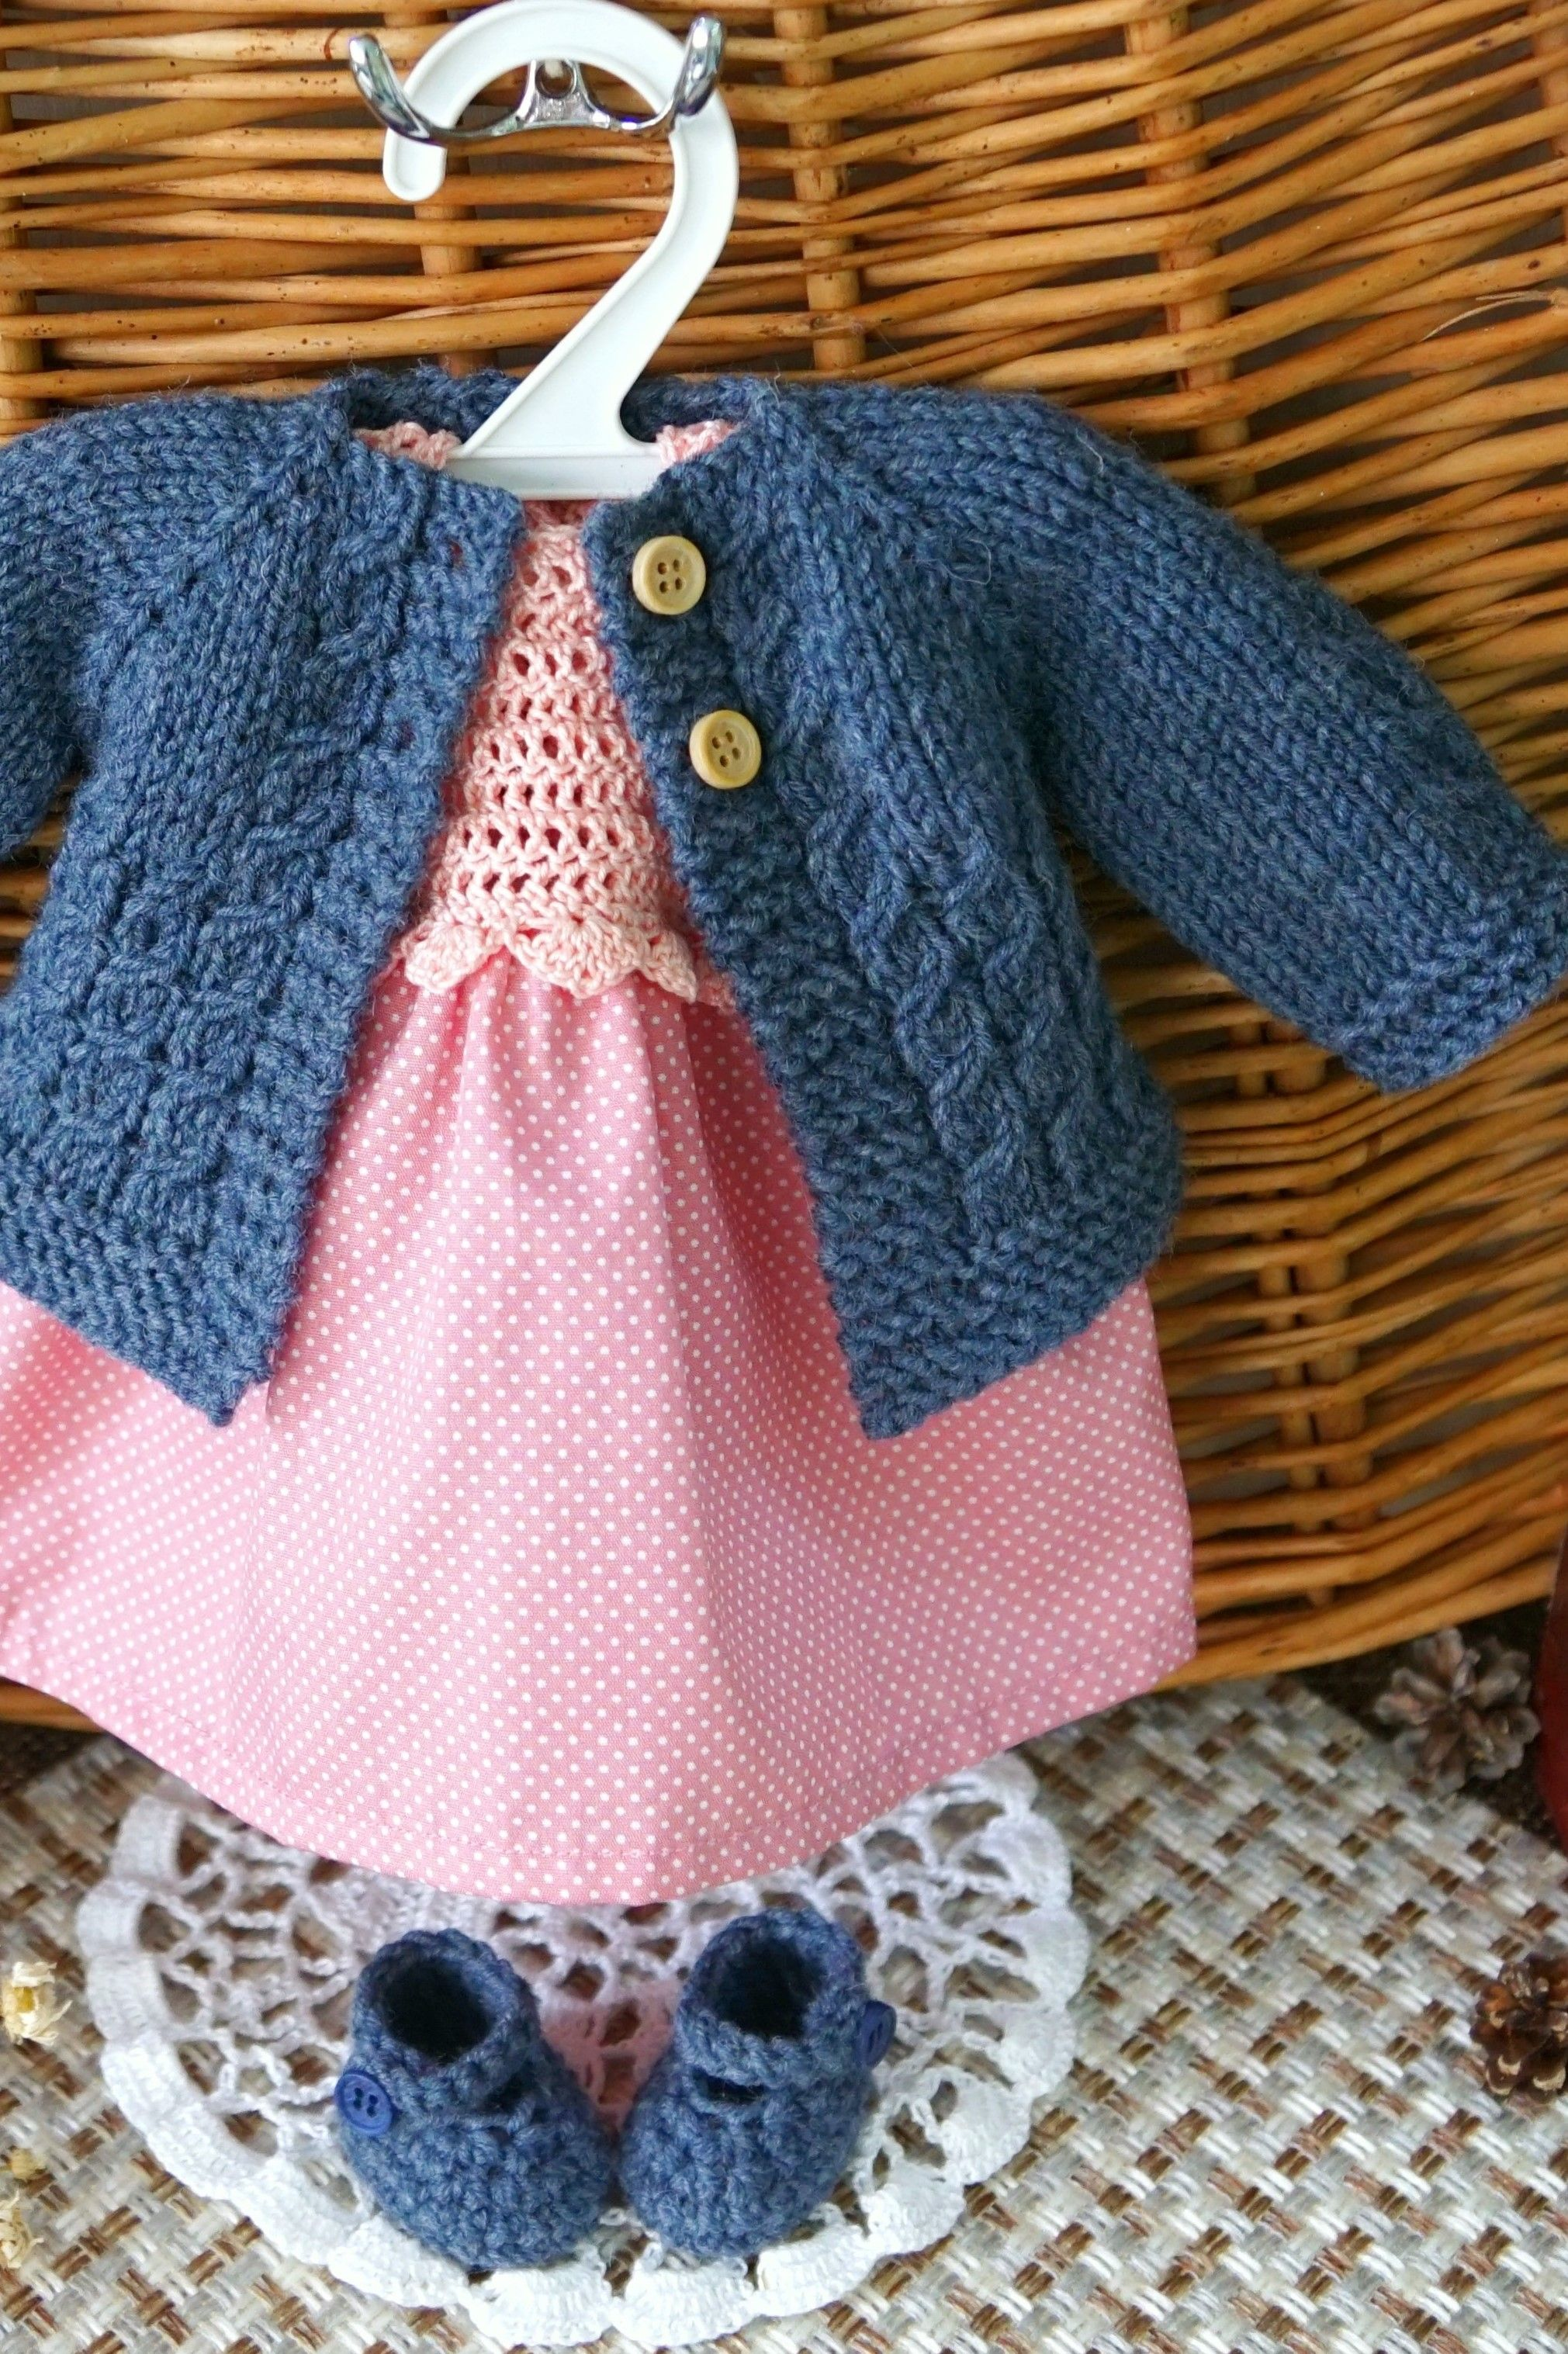 Doll clothes set, pink salmon cotton dress, denim blue knit jacket, blue Slippers. Handmade #dollclothes